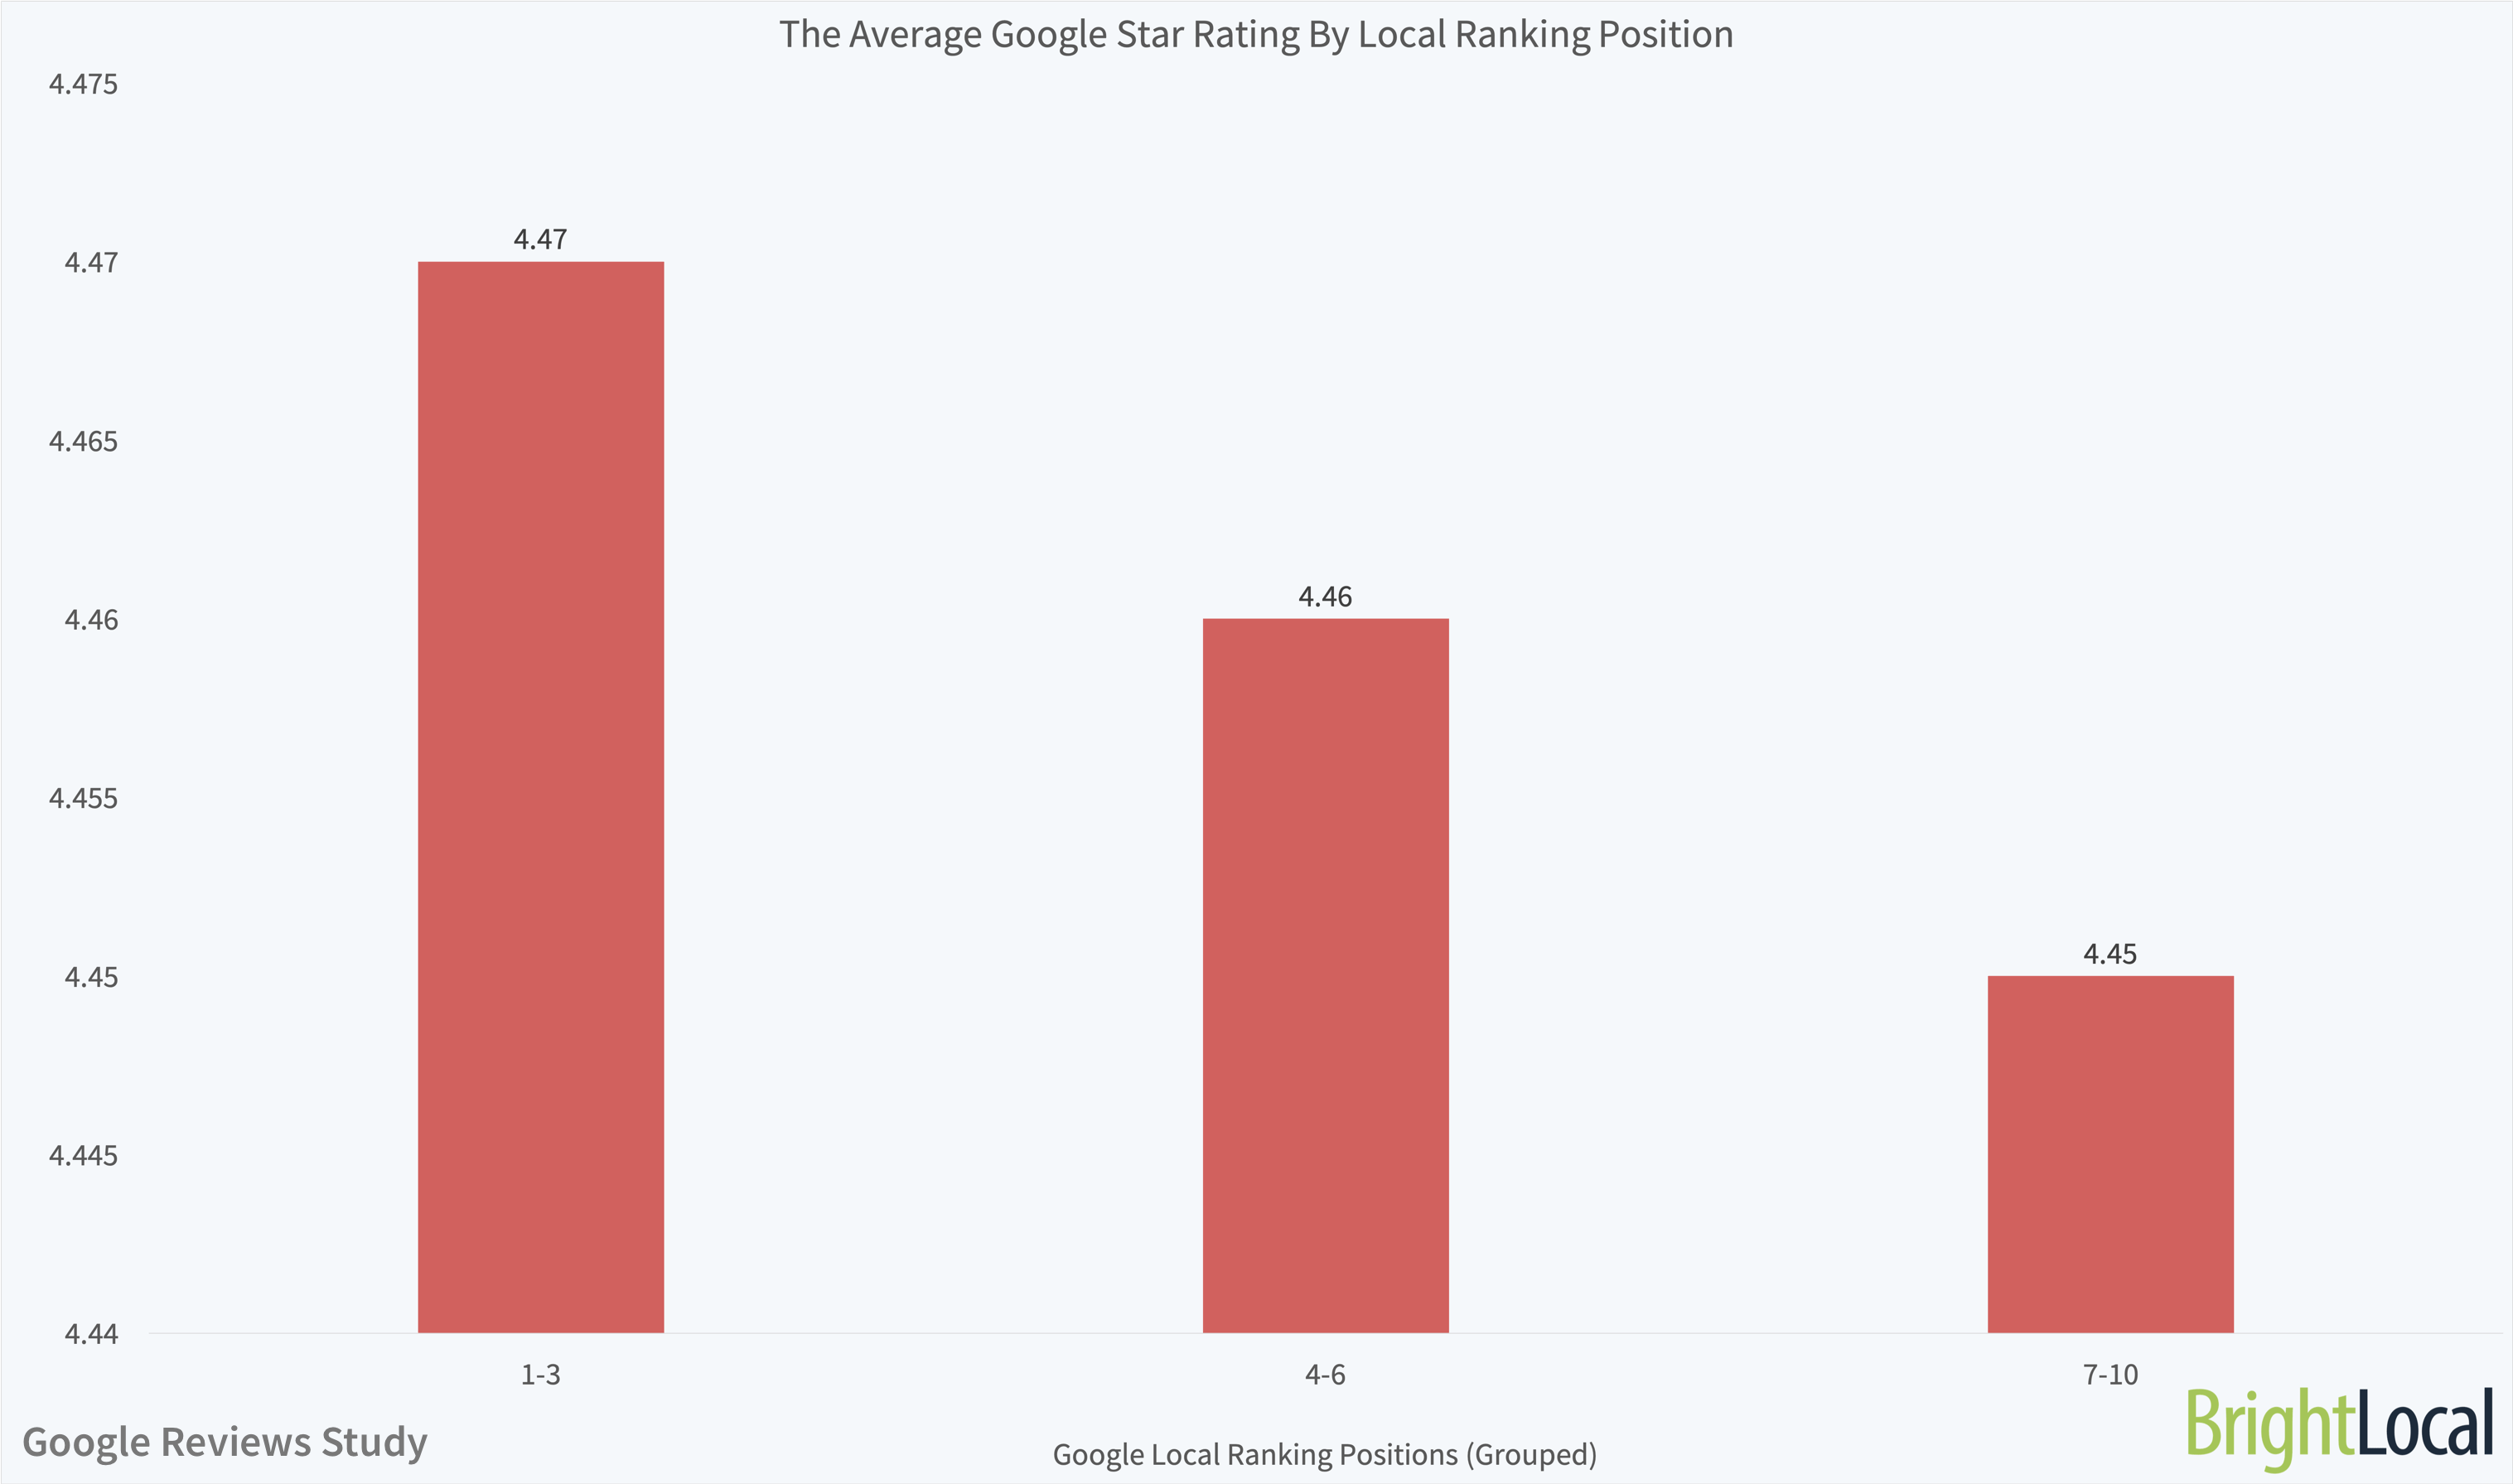 The Average Google Star Rating By Local Ranking Position